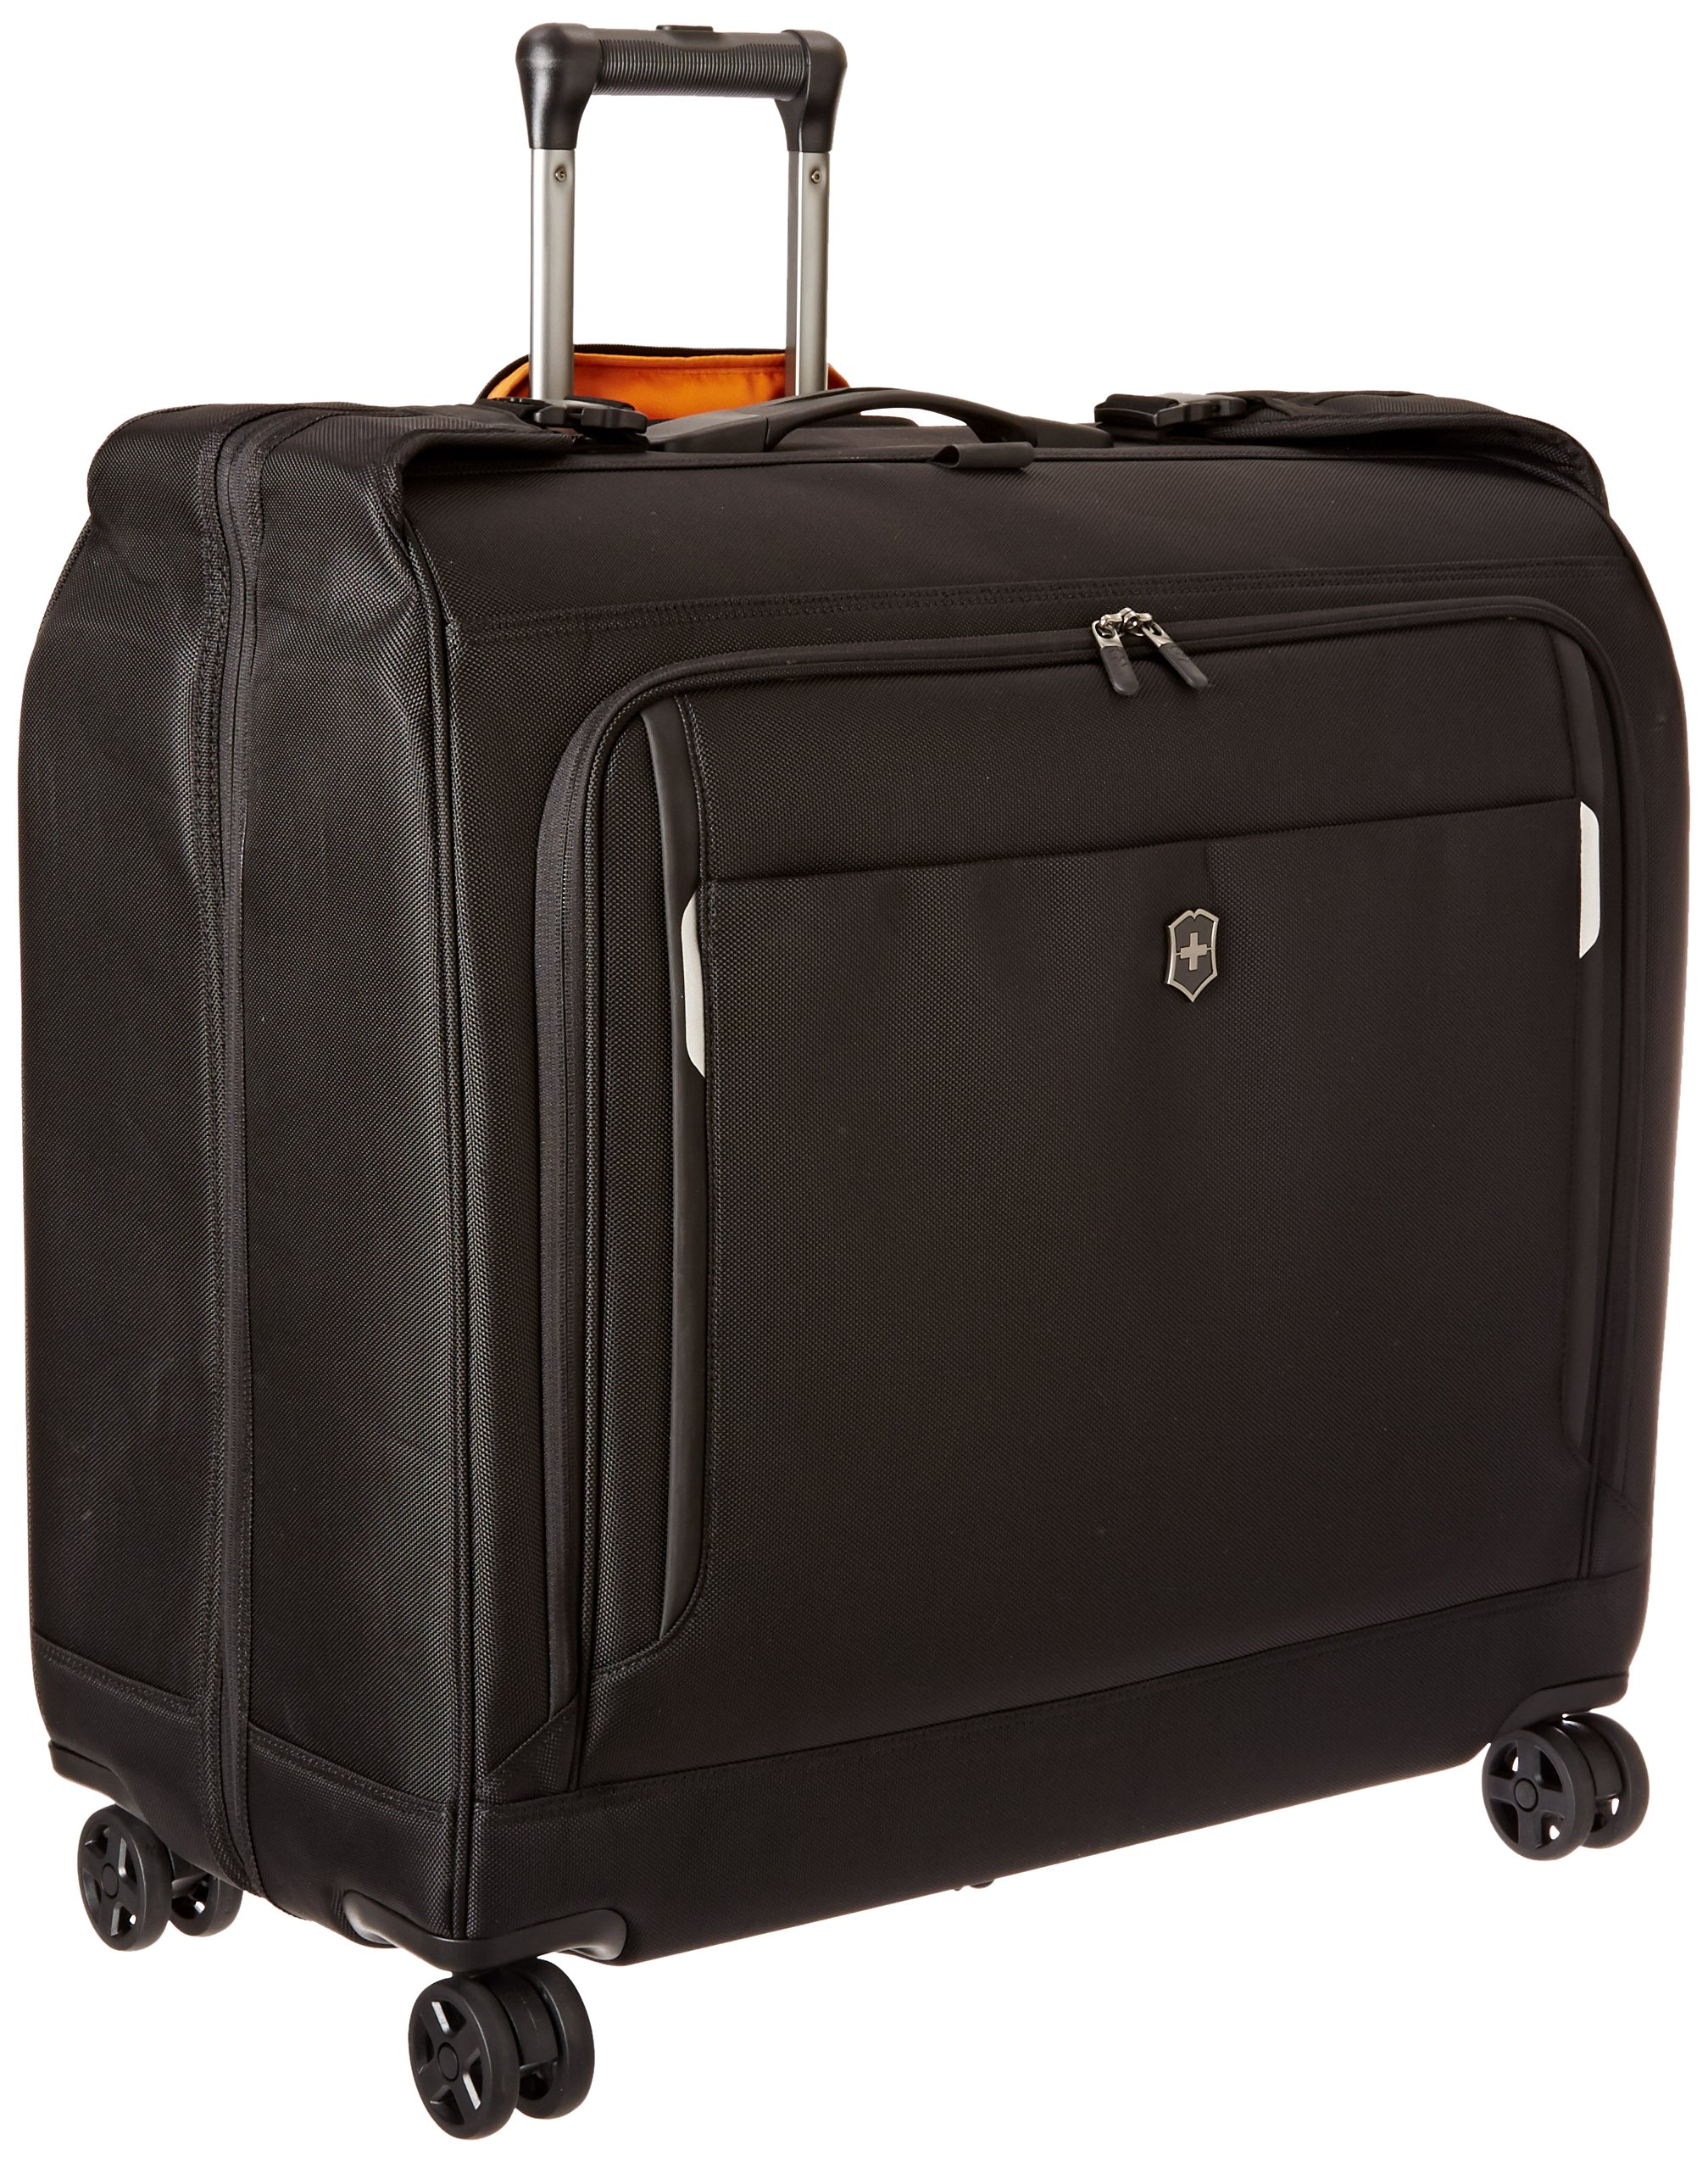 Victorinox Werks Traveler 5.0 WT Dual Caster Garment Bag, Black, One Size